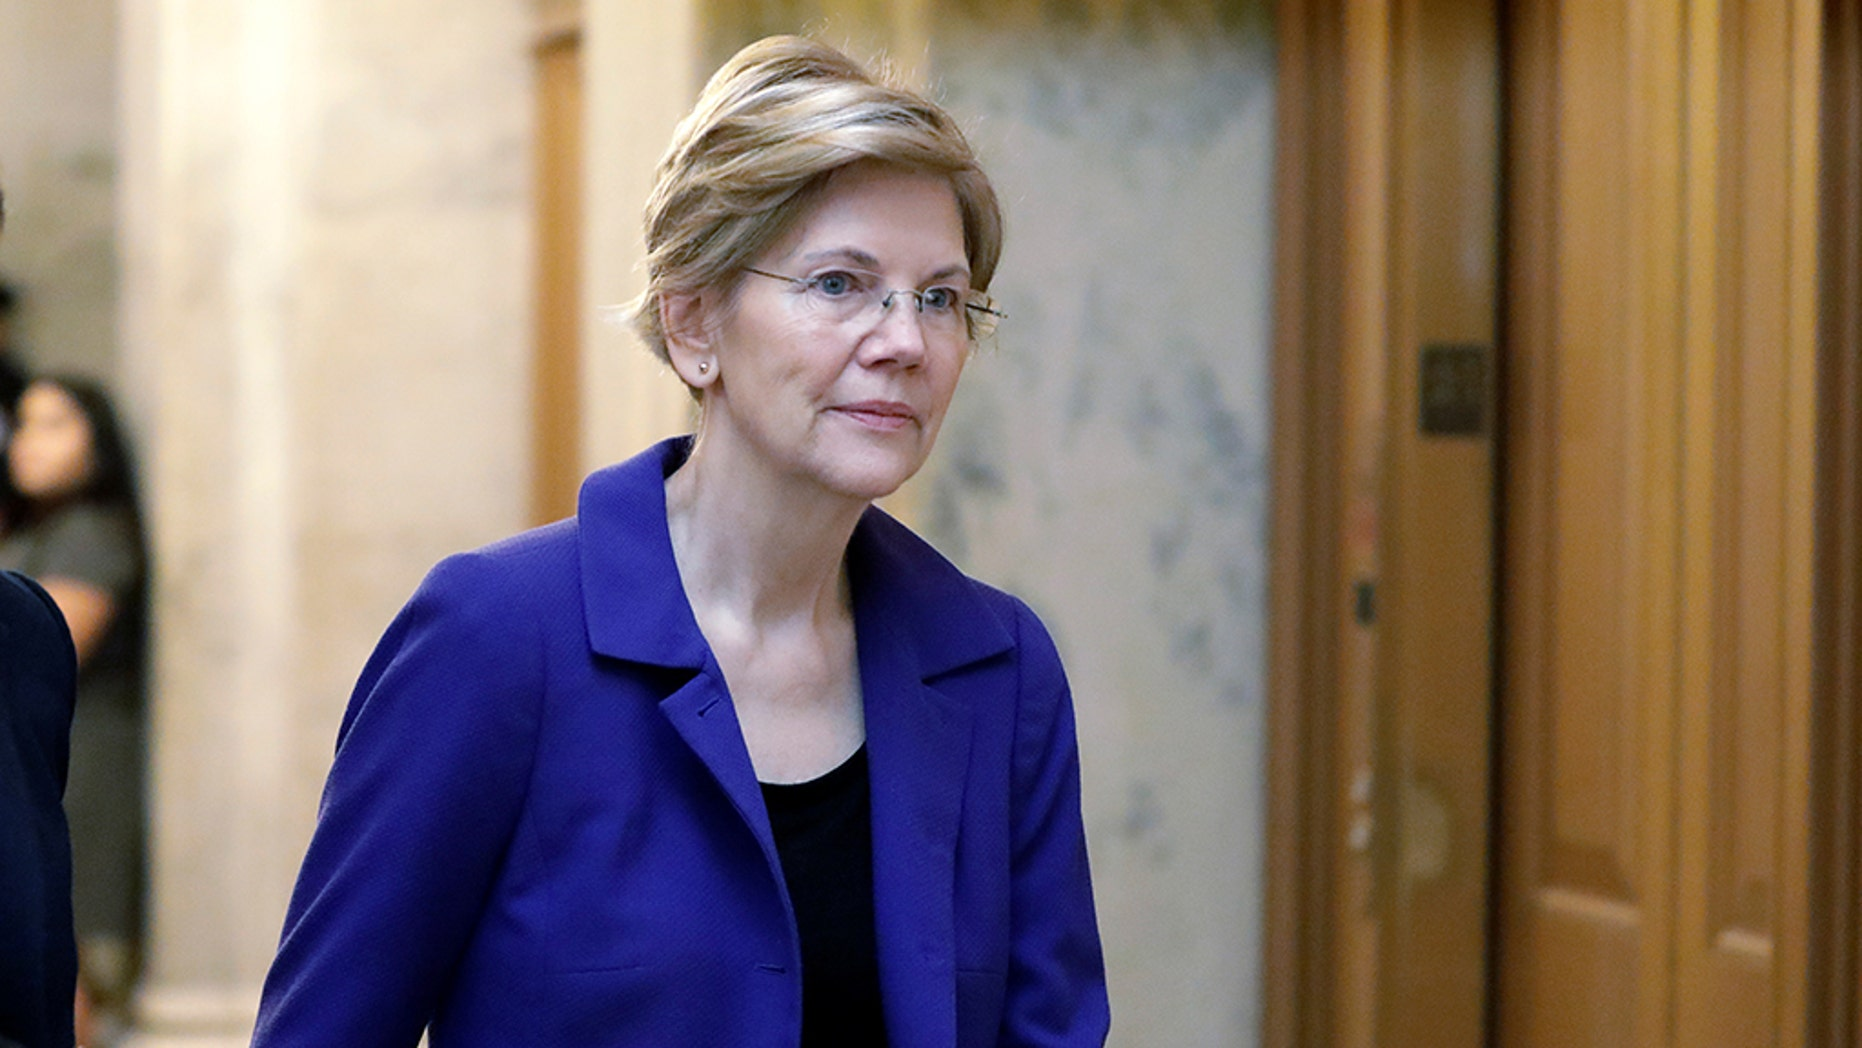 Massachusetts politicians - including Democratic Sen. Elizabeth Warren - who may be mulling a 2020 White House should think carefully about the decision, The Boston Globe's editorial board has been published on a Thursday.